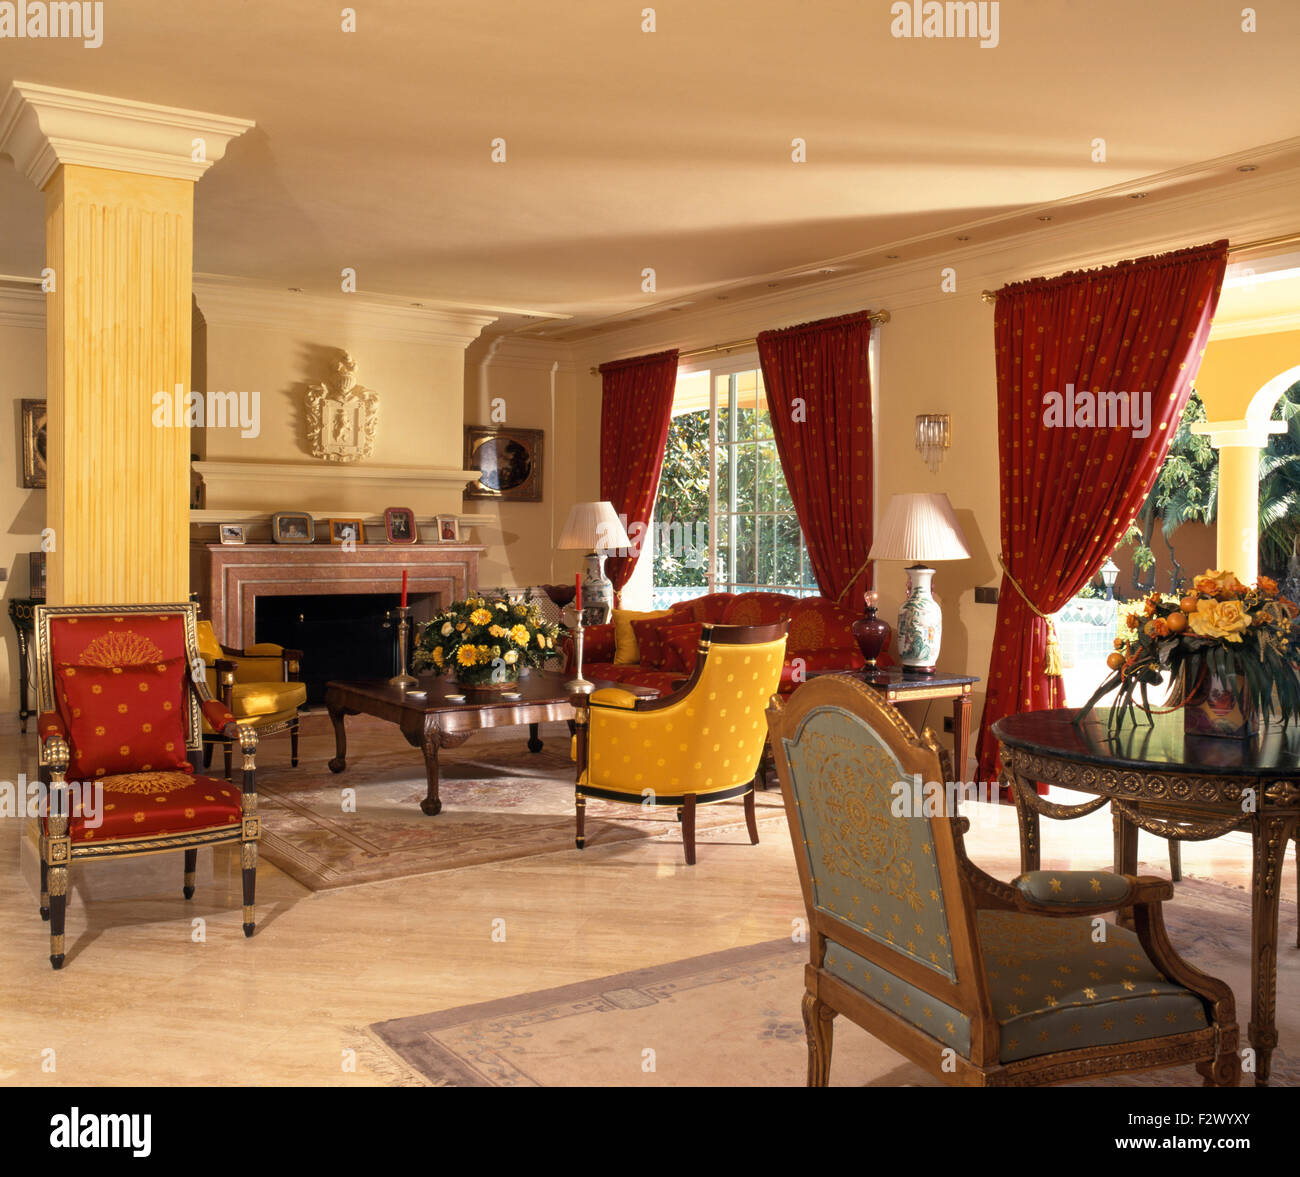 What Is Sofa In Spanish Red Curtains And Colourful Chairs And Sofa In Spanish Living Room